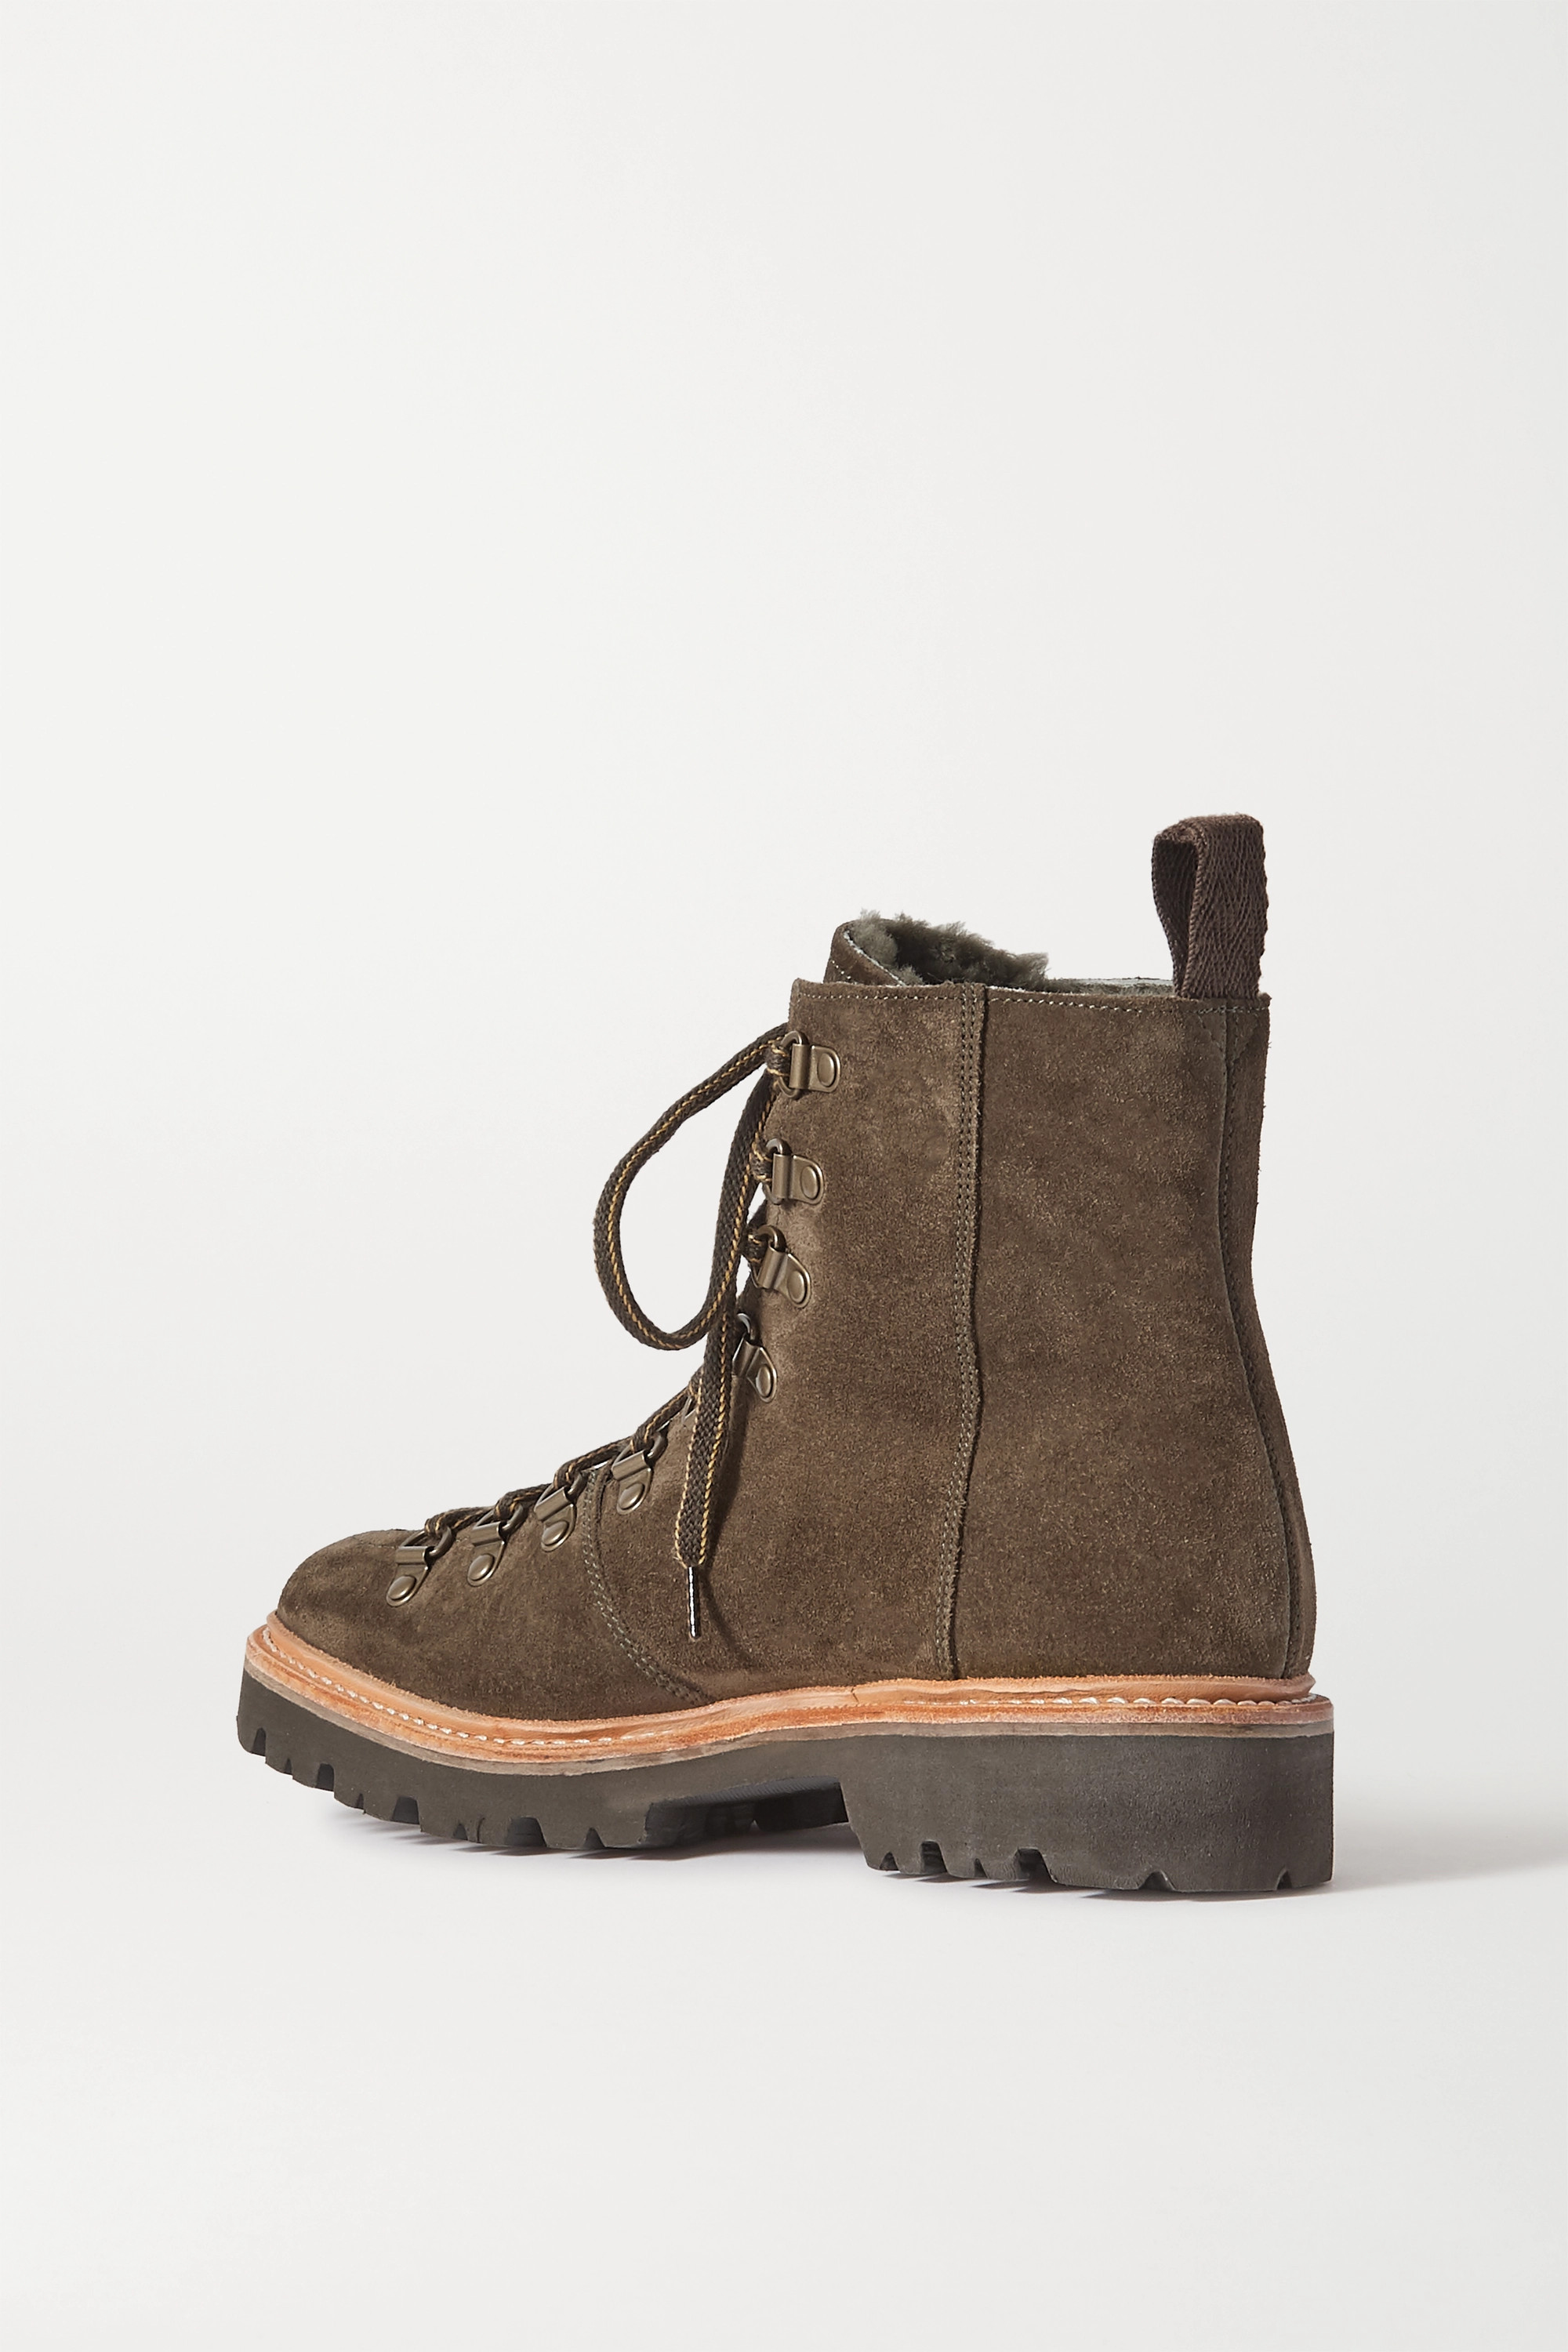 Grenson Nanette shearling-lined suede ankle boots